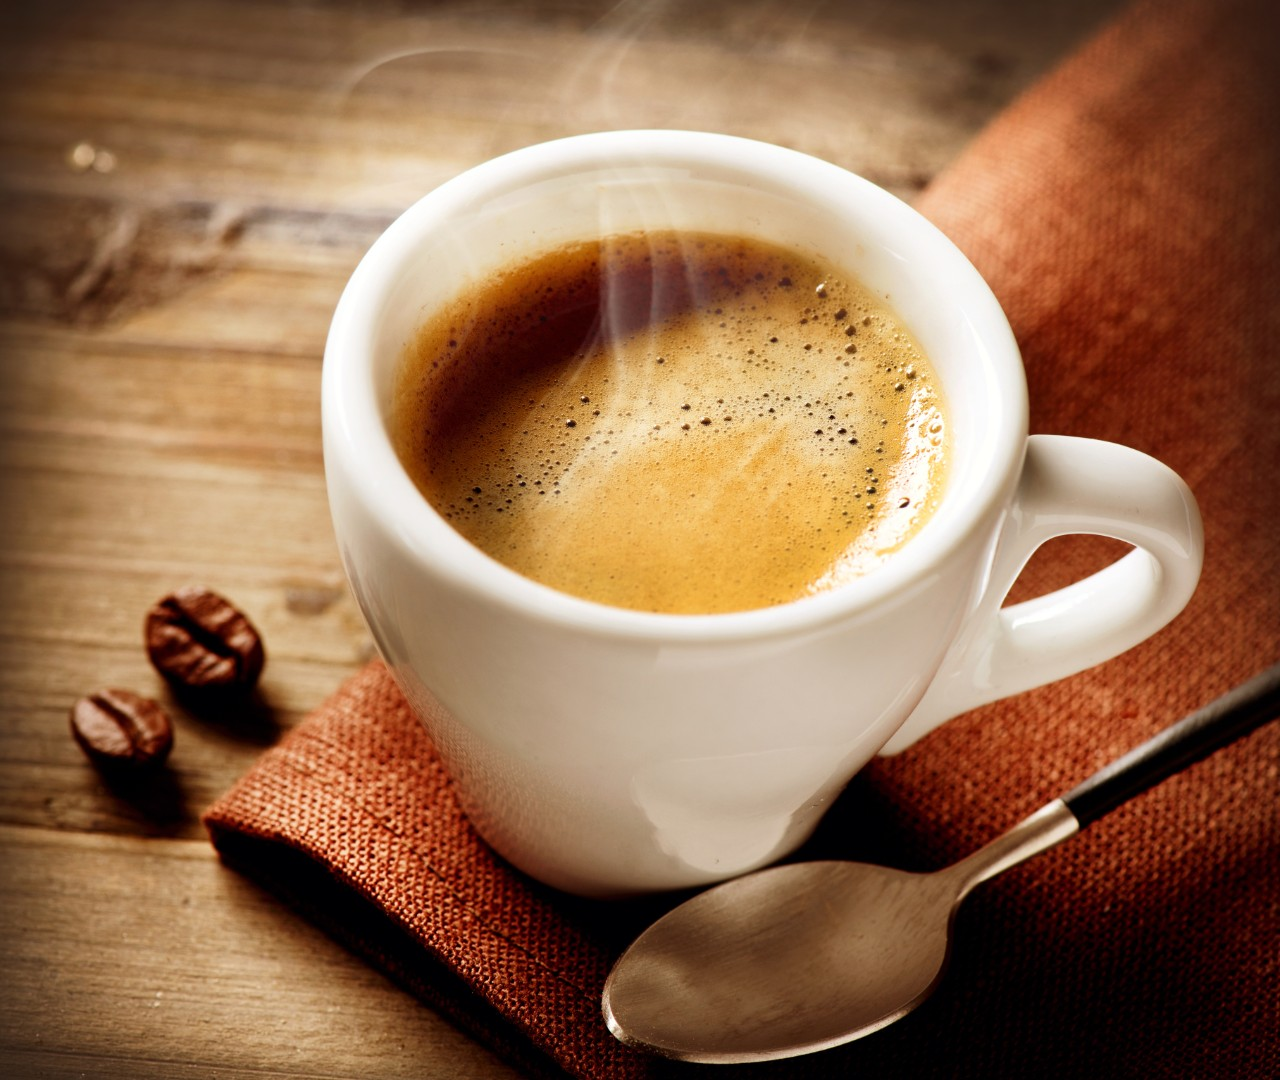 close-up-of-steaming-cup-of-coffee-in-white-mug-on-wooden-surface-with-espresso-beans-and-spoon-horizontal-7271x6136-image-file